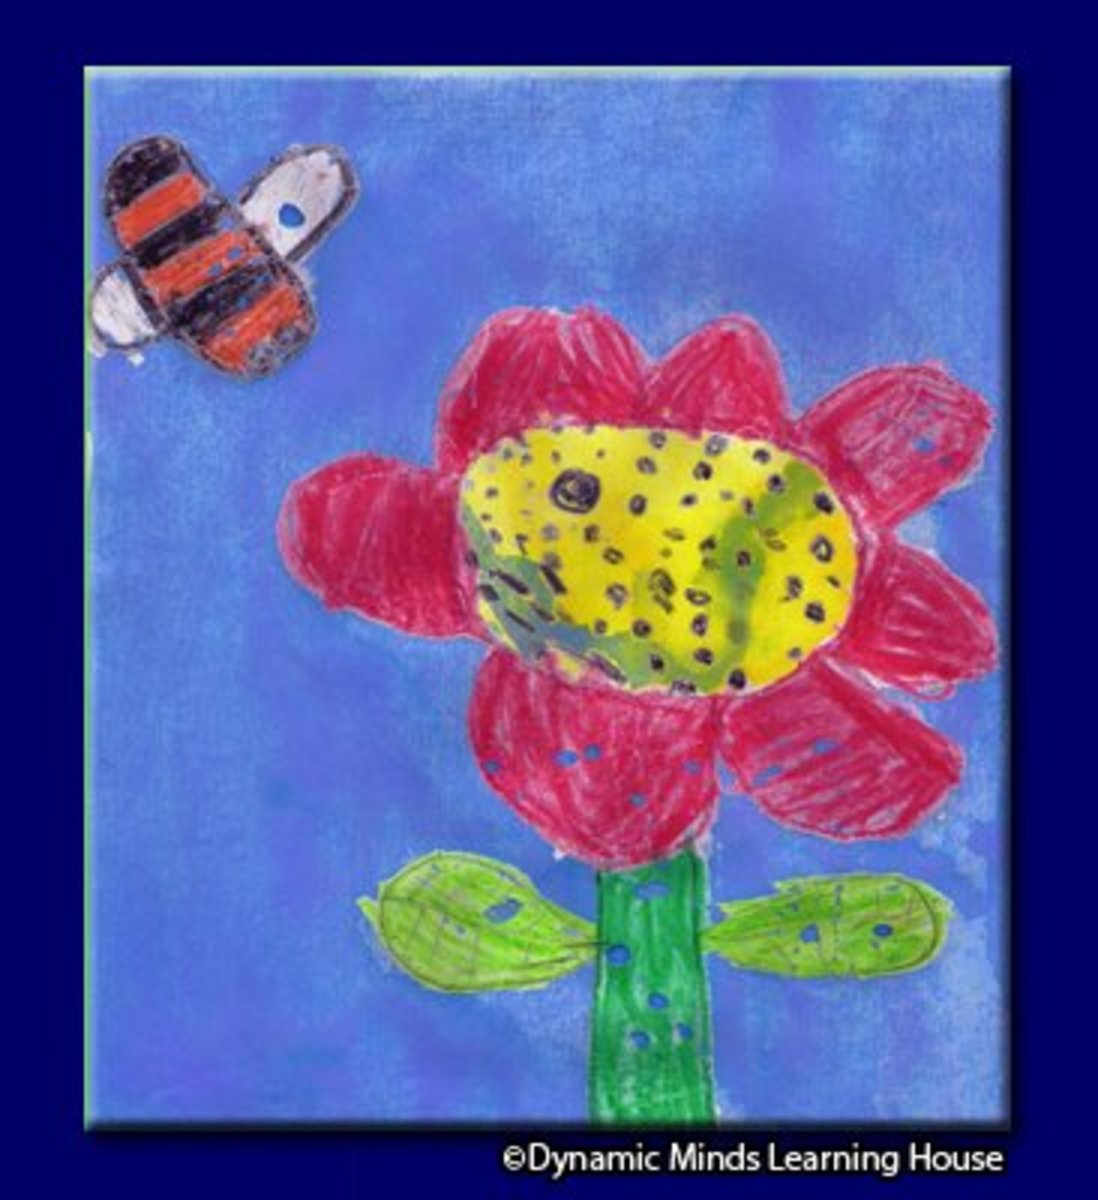 This drawing was made by one of our students, Jameishka Mulchandani, age 6